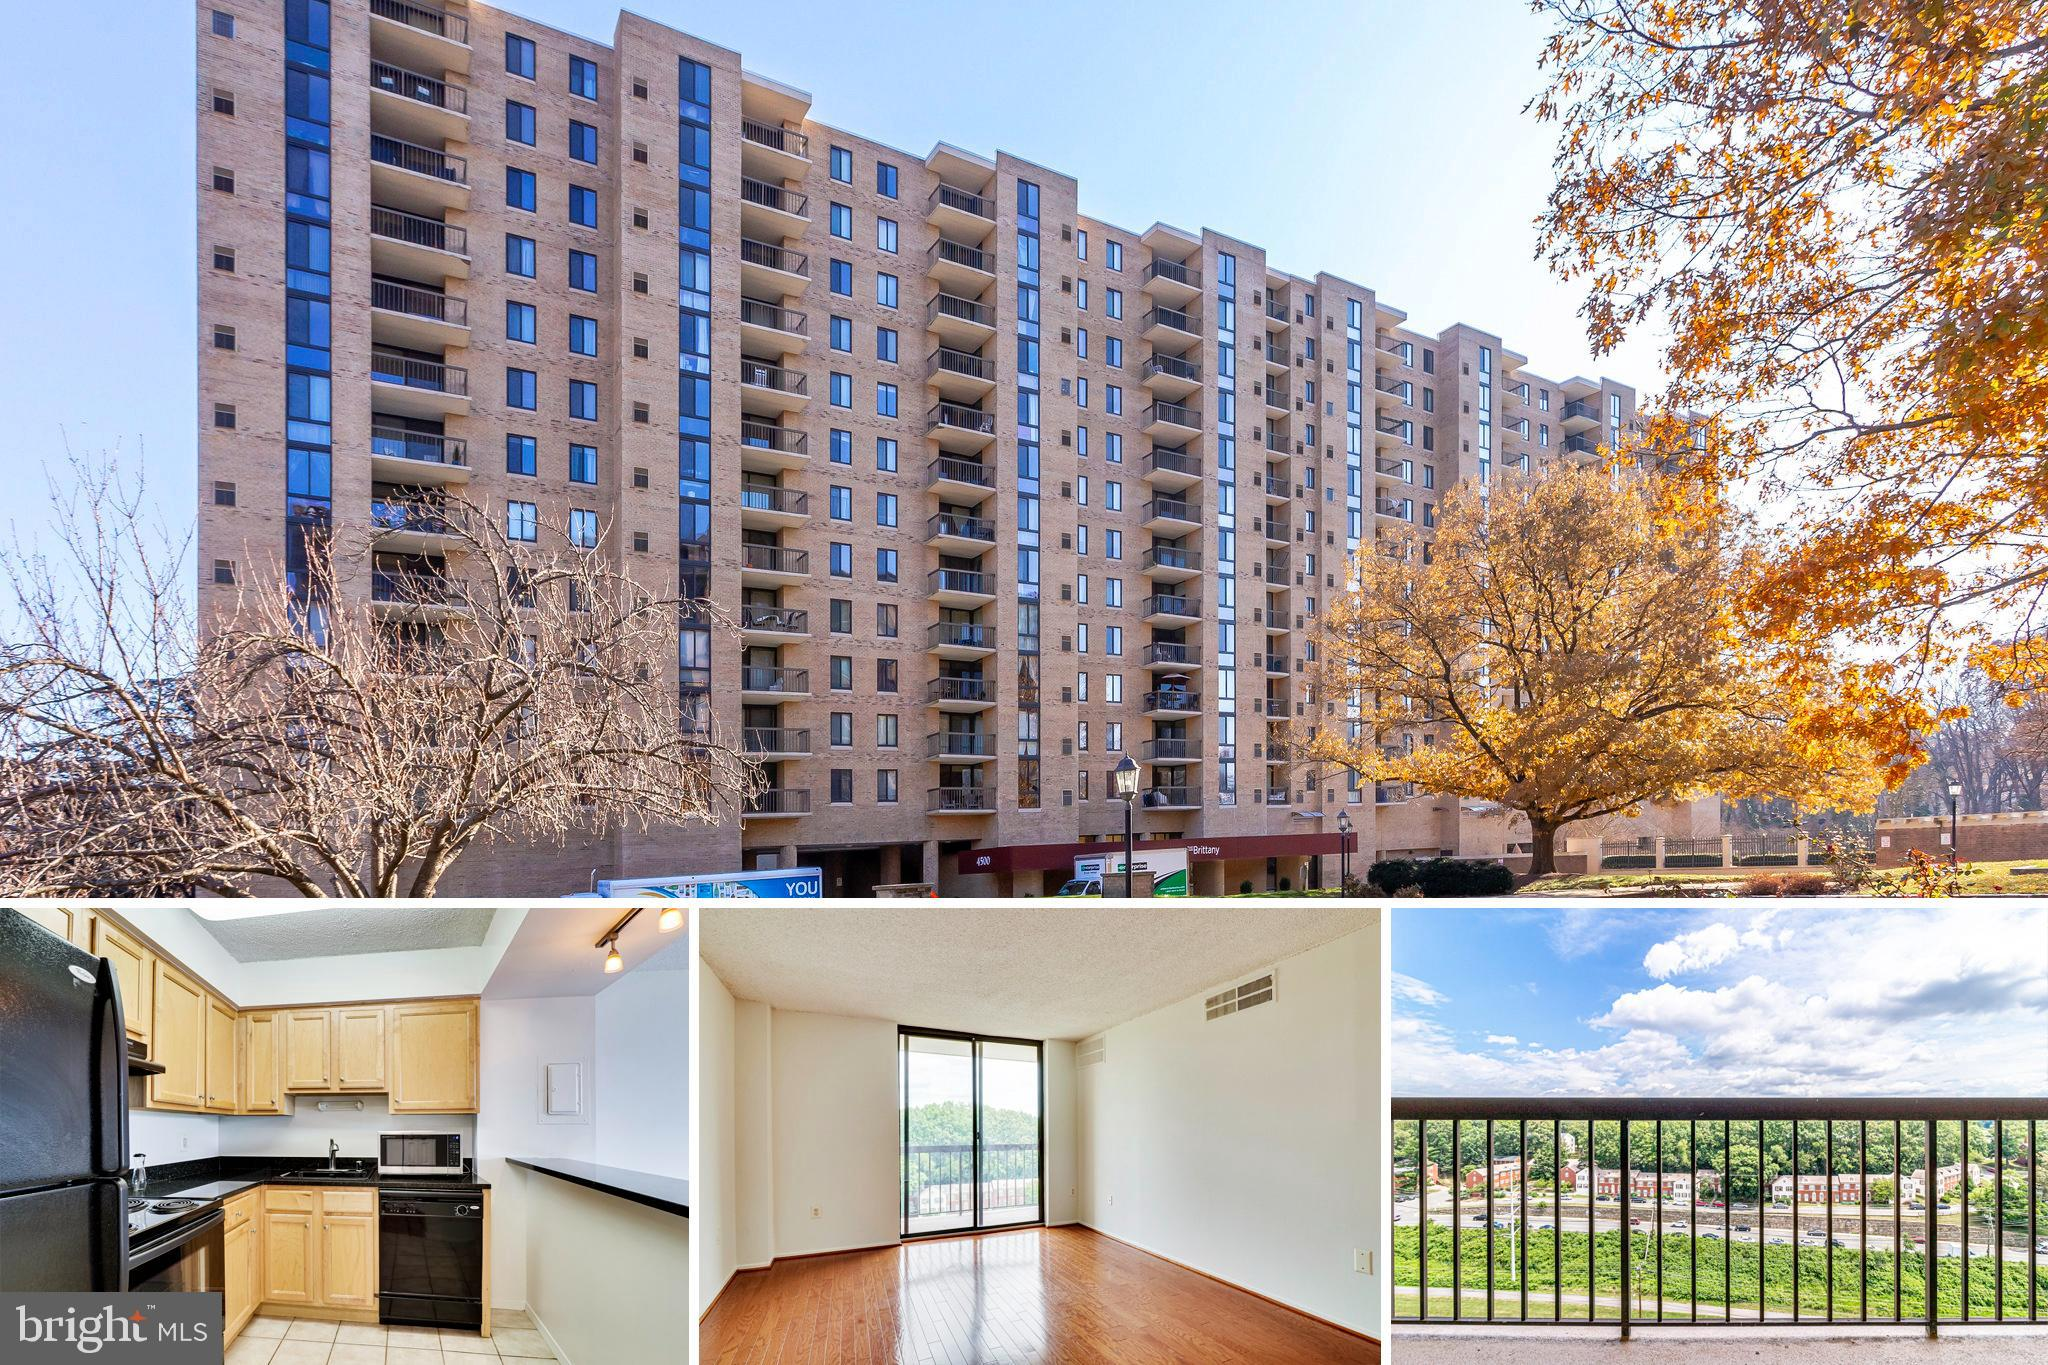 Updated open kitchen with granite counters and ceramic tile, living & dining areas have hwd floors, large walk-in closet, grt balcony. Great amenities like fitness center, outdoor pool, tennis courts. Bike path across the street.  Condo fee covers water, trash and sewer. 1 parking spot assigned.